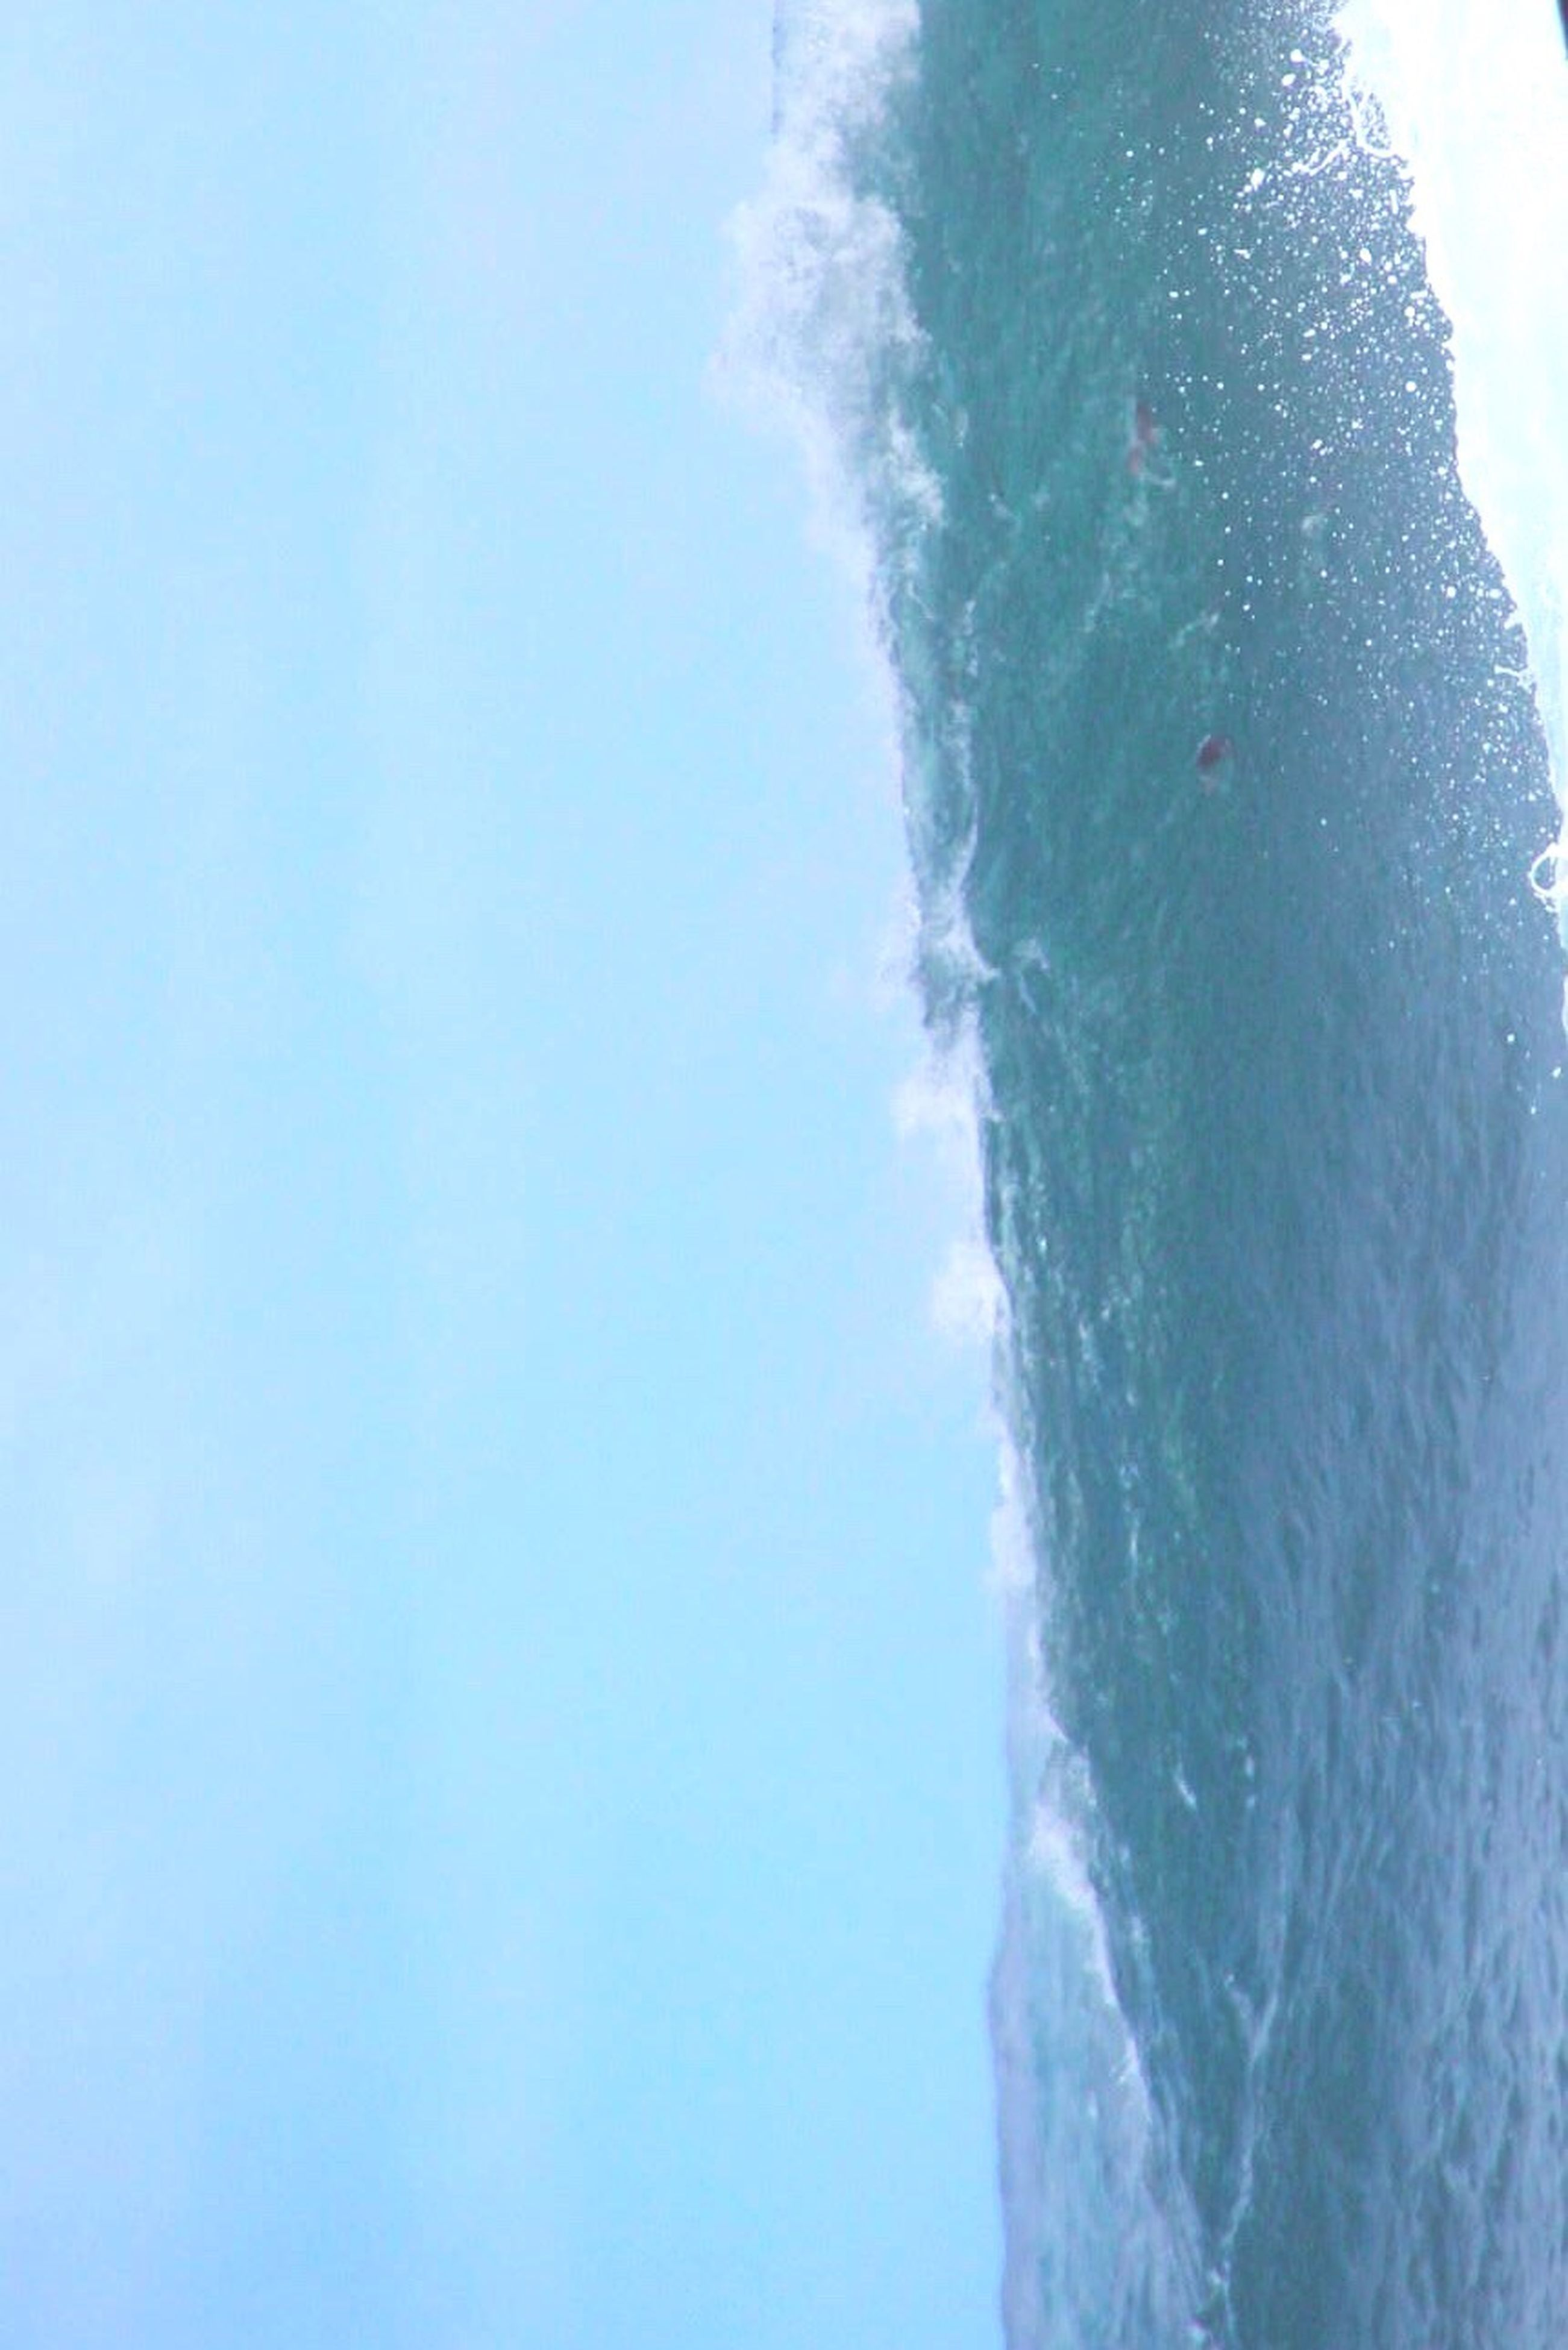 sea, wave, water, day, motion, nature, no people, outdoors, beauty in nature, blue, clear sky, sky, close-up, freshness